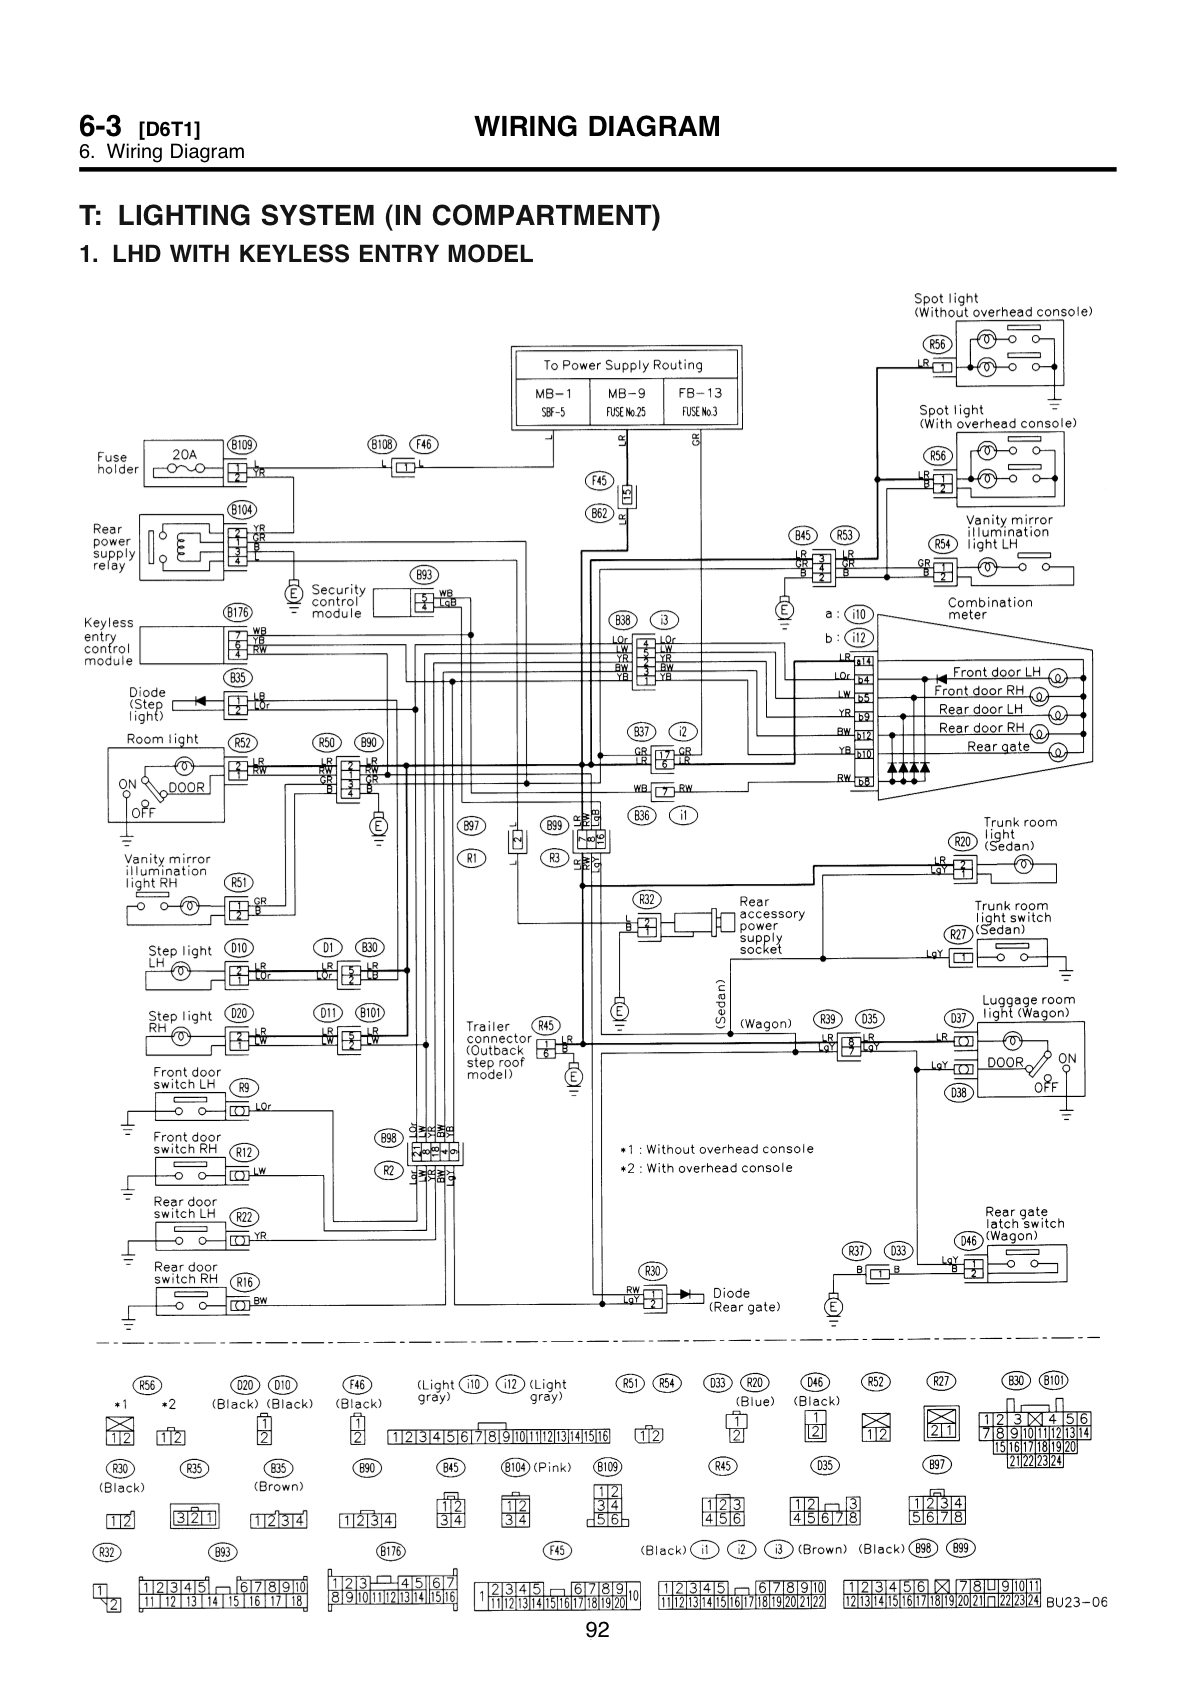 wiring_diagram1?resize\=840%2C1187 diagrams 554363 kramer single humbucker wiring diagram kramer Single Humbucker Wiring-Diagram at alyssarenee.co